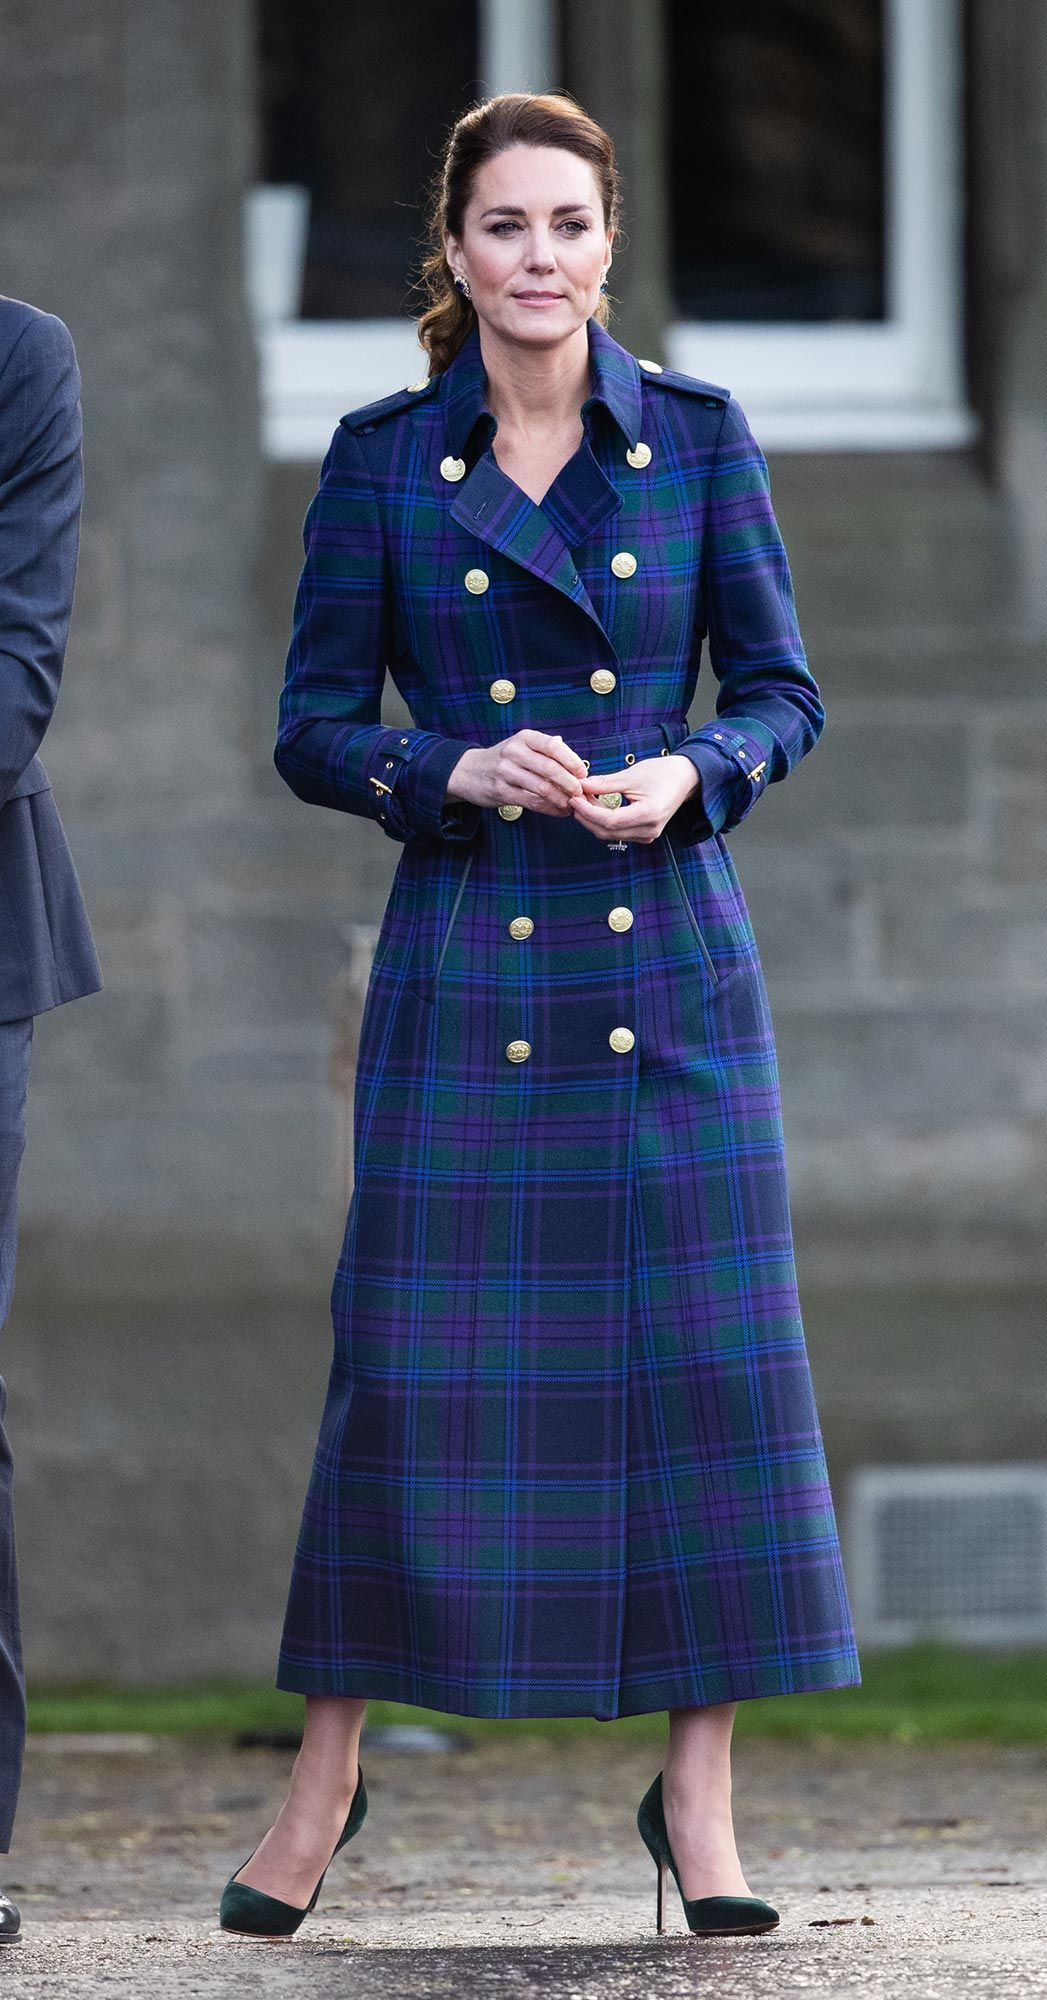 Catherine, Duchess of Cambridge arrives to host NHS Charities Together and NHS staff at a unique drive-in cinema to watch a special screening of Disney's Cruella at the Palace of Holyroodhouse on day six of their week-long visit to Scotland on May 26, 2021 in Edinburgh, Scotland. Photo: Getty Images